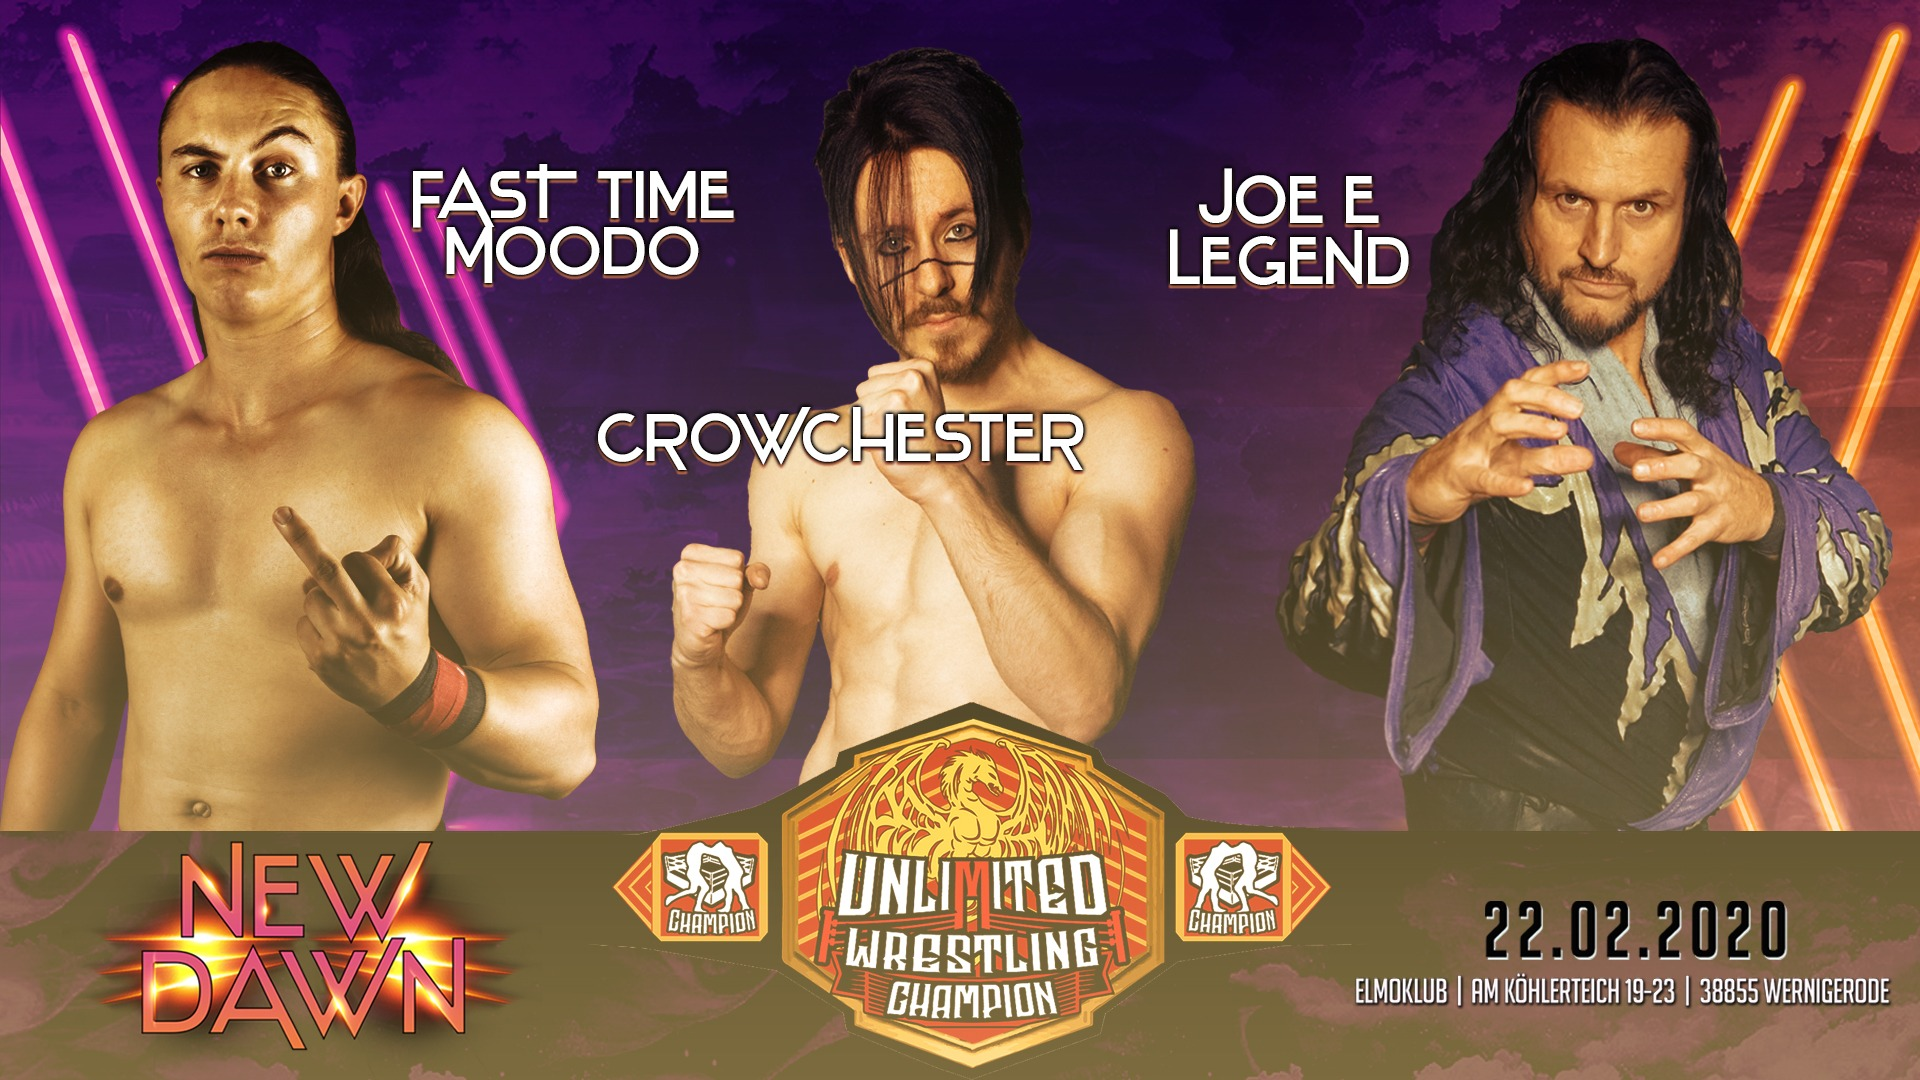 Unlimited Championship Triple Threat MatchFast Time Moodo vs. Joe E Legend vs. Crowchester